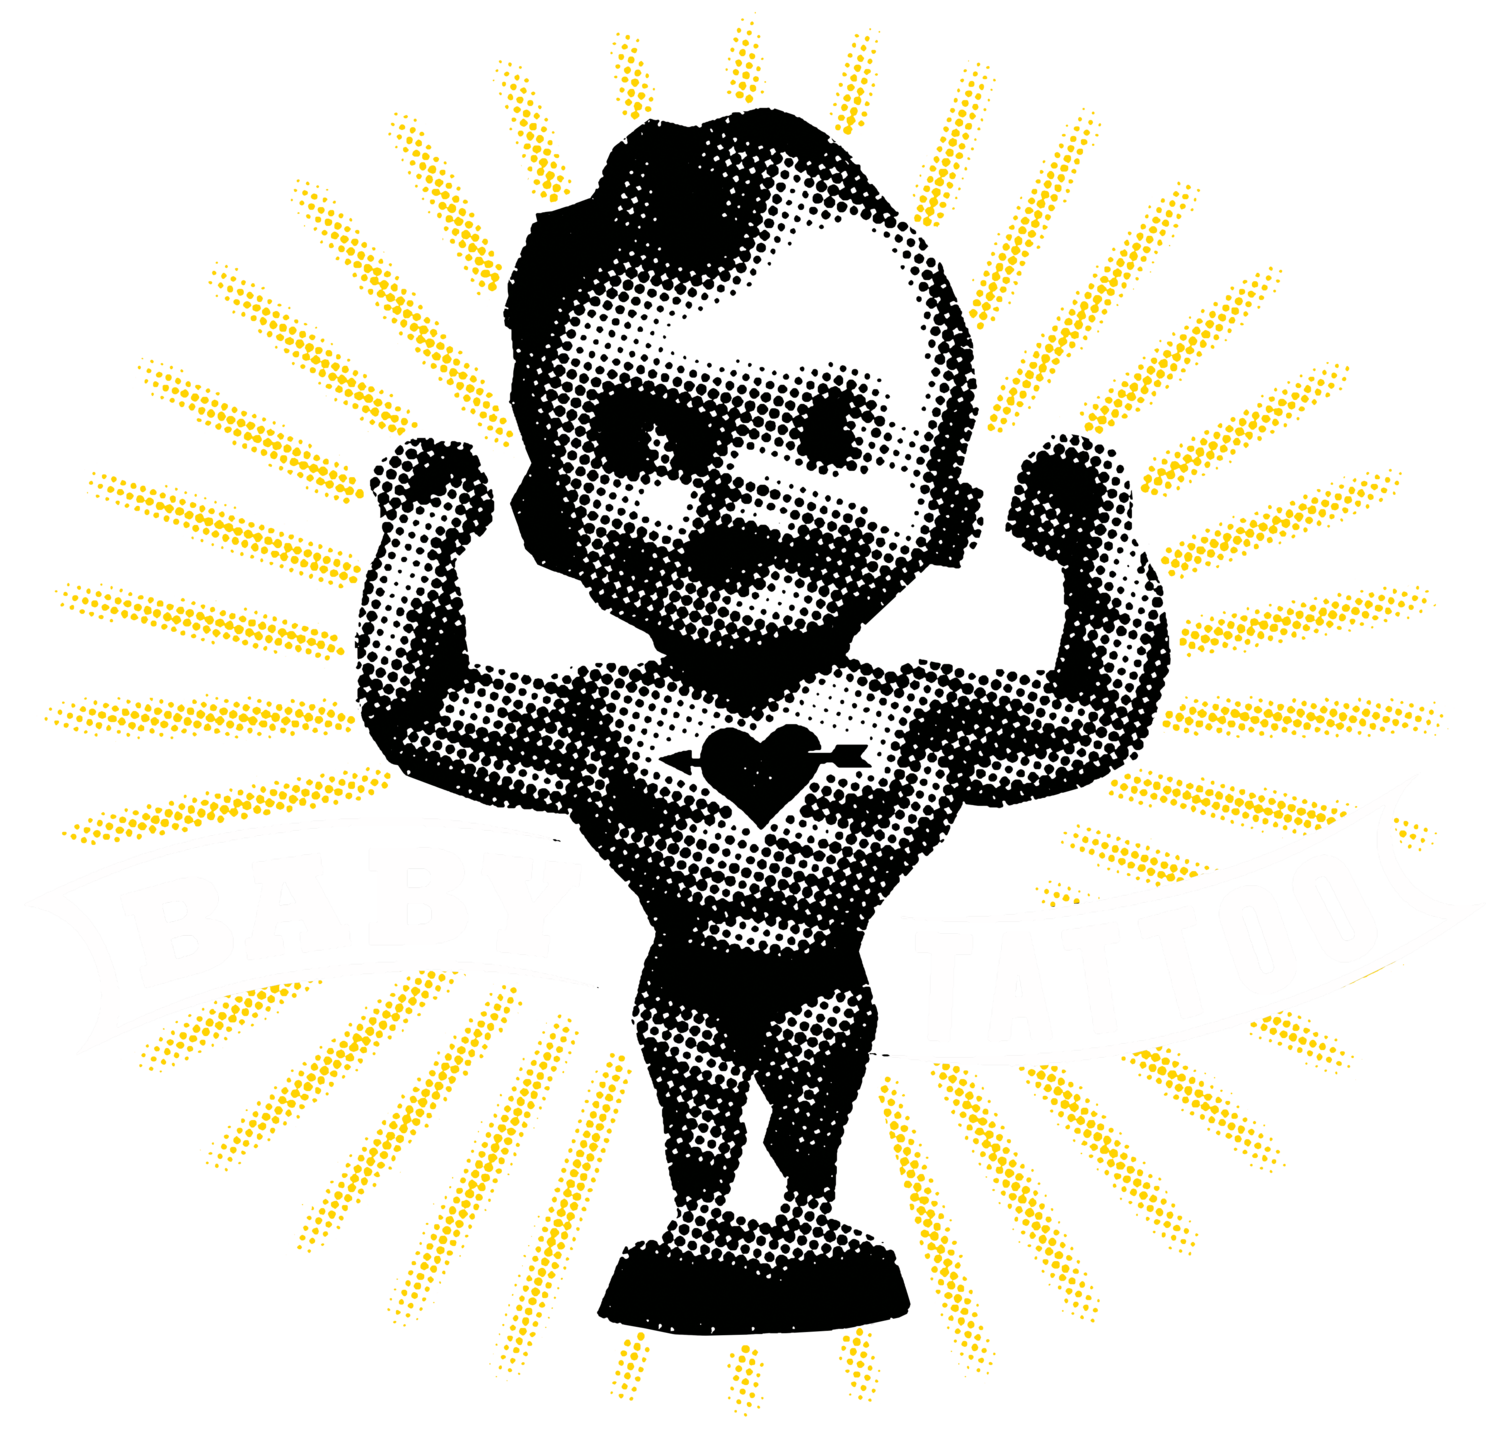 Baby Tattoo - Carnival of Astounding Art